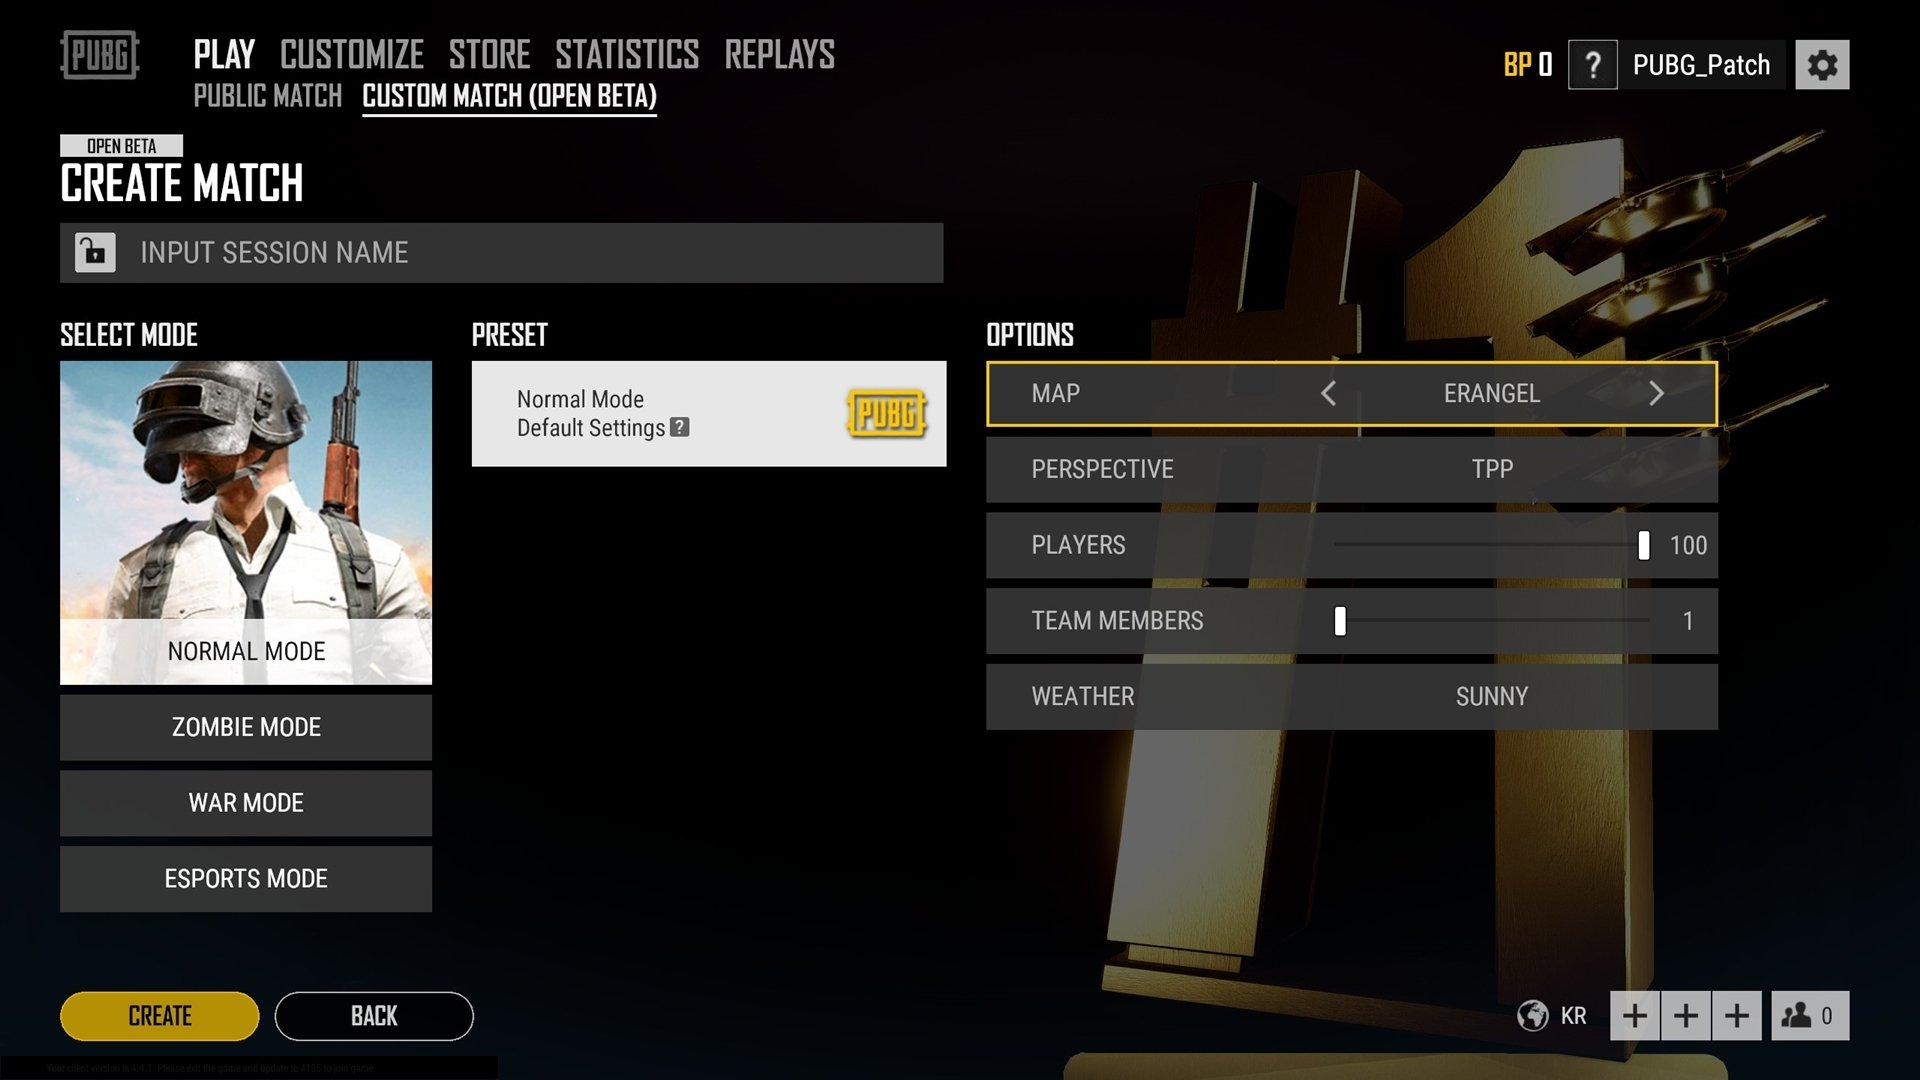 Custom Matches Live On PUBG Test Server, Possibility Of Future Paywall